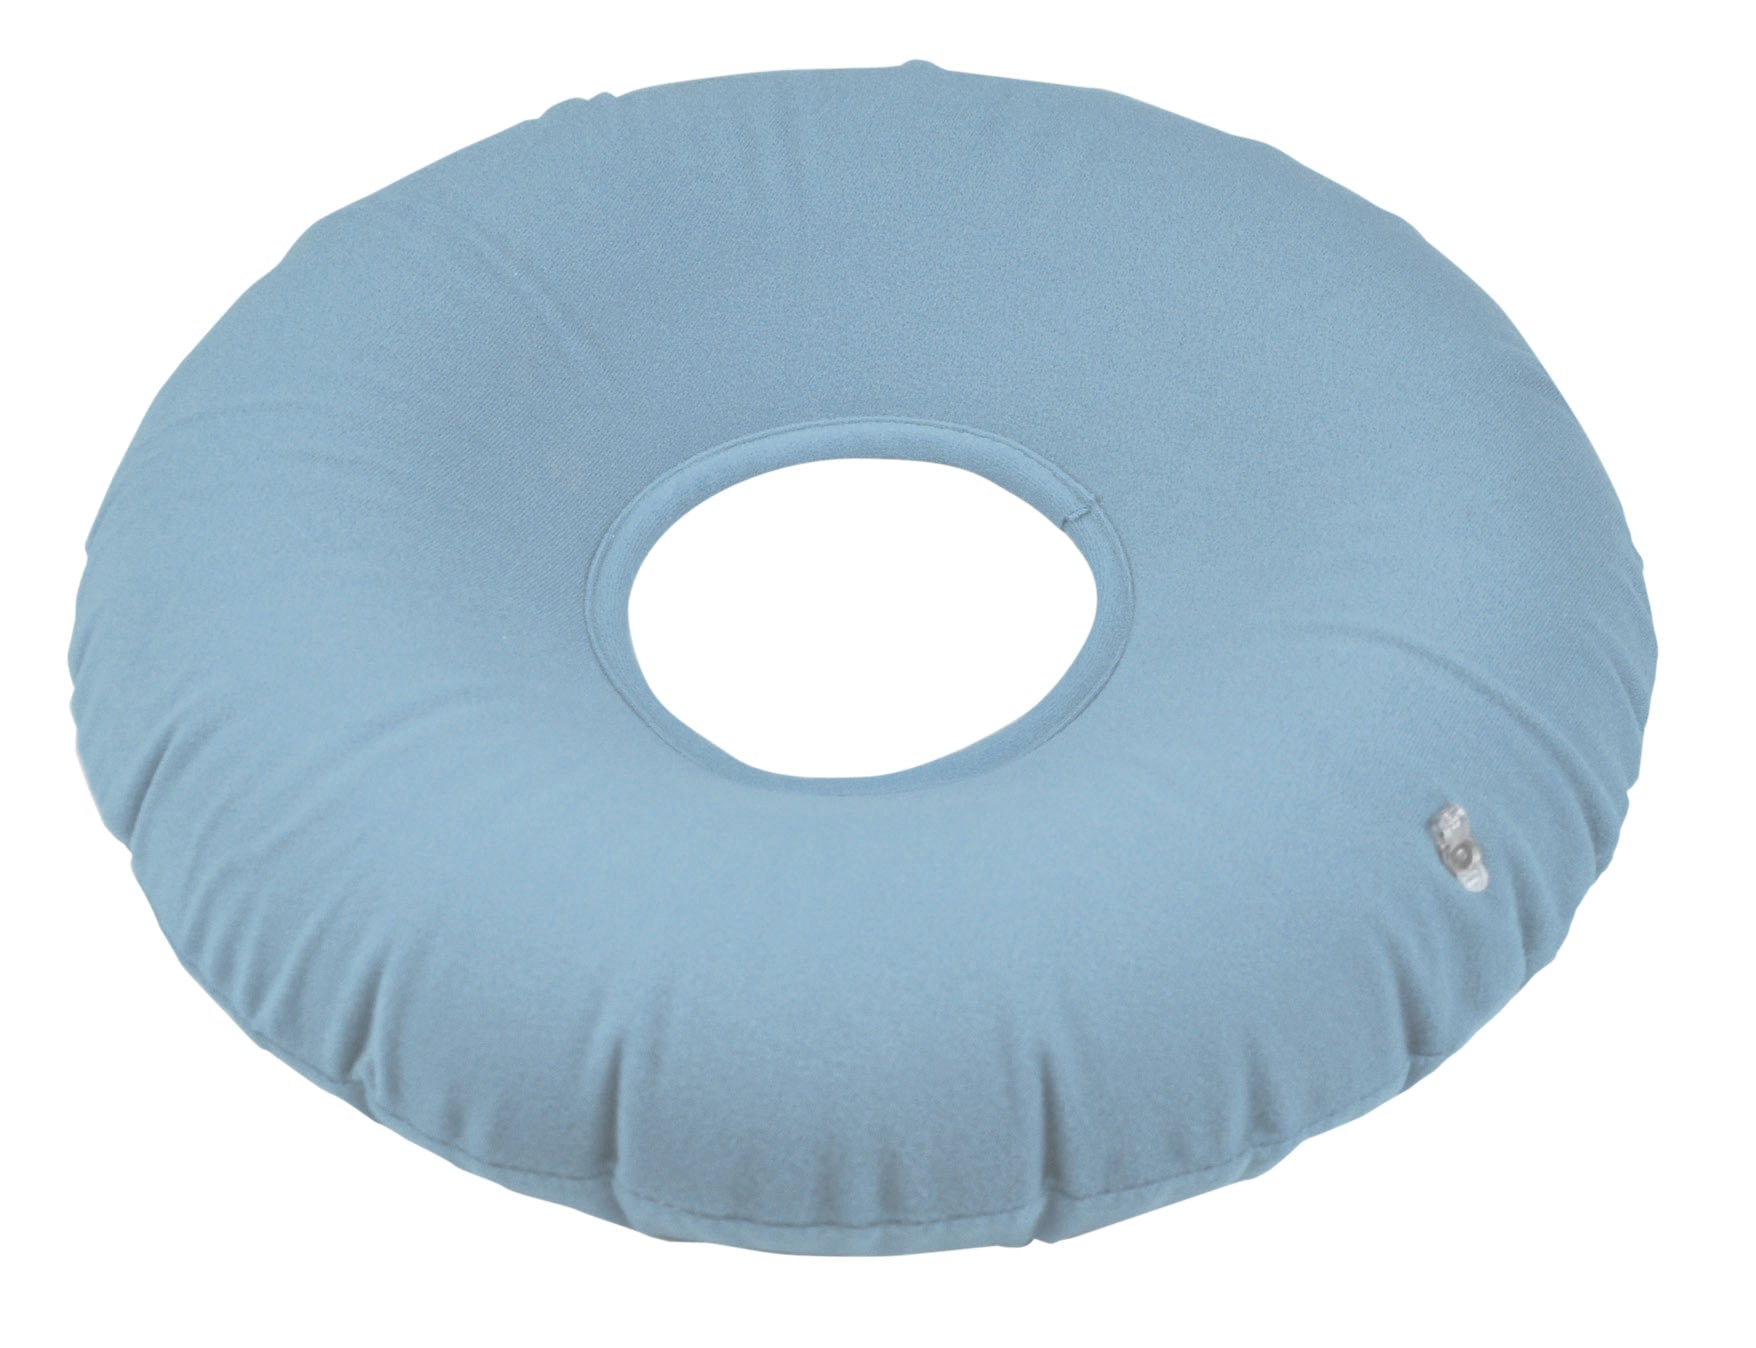 Aidapt Inflatable Pressure Relief Ring Cushion